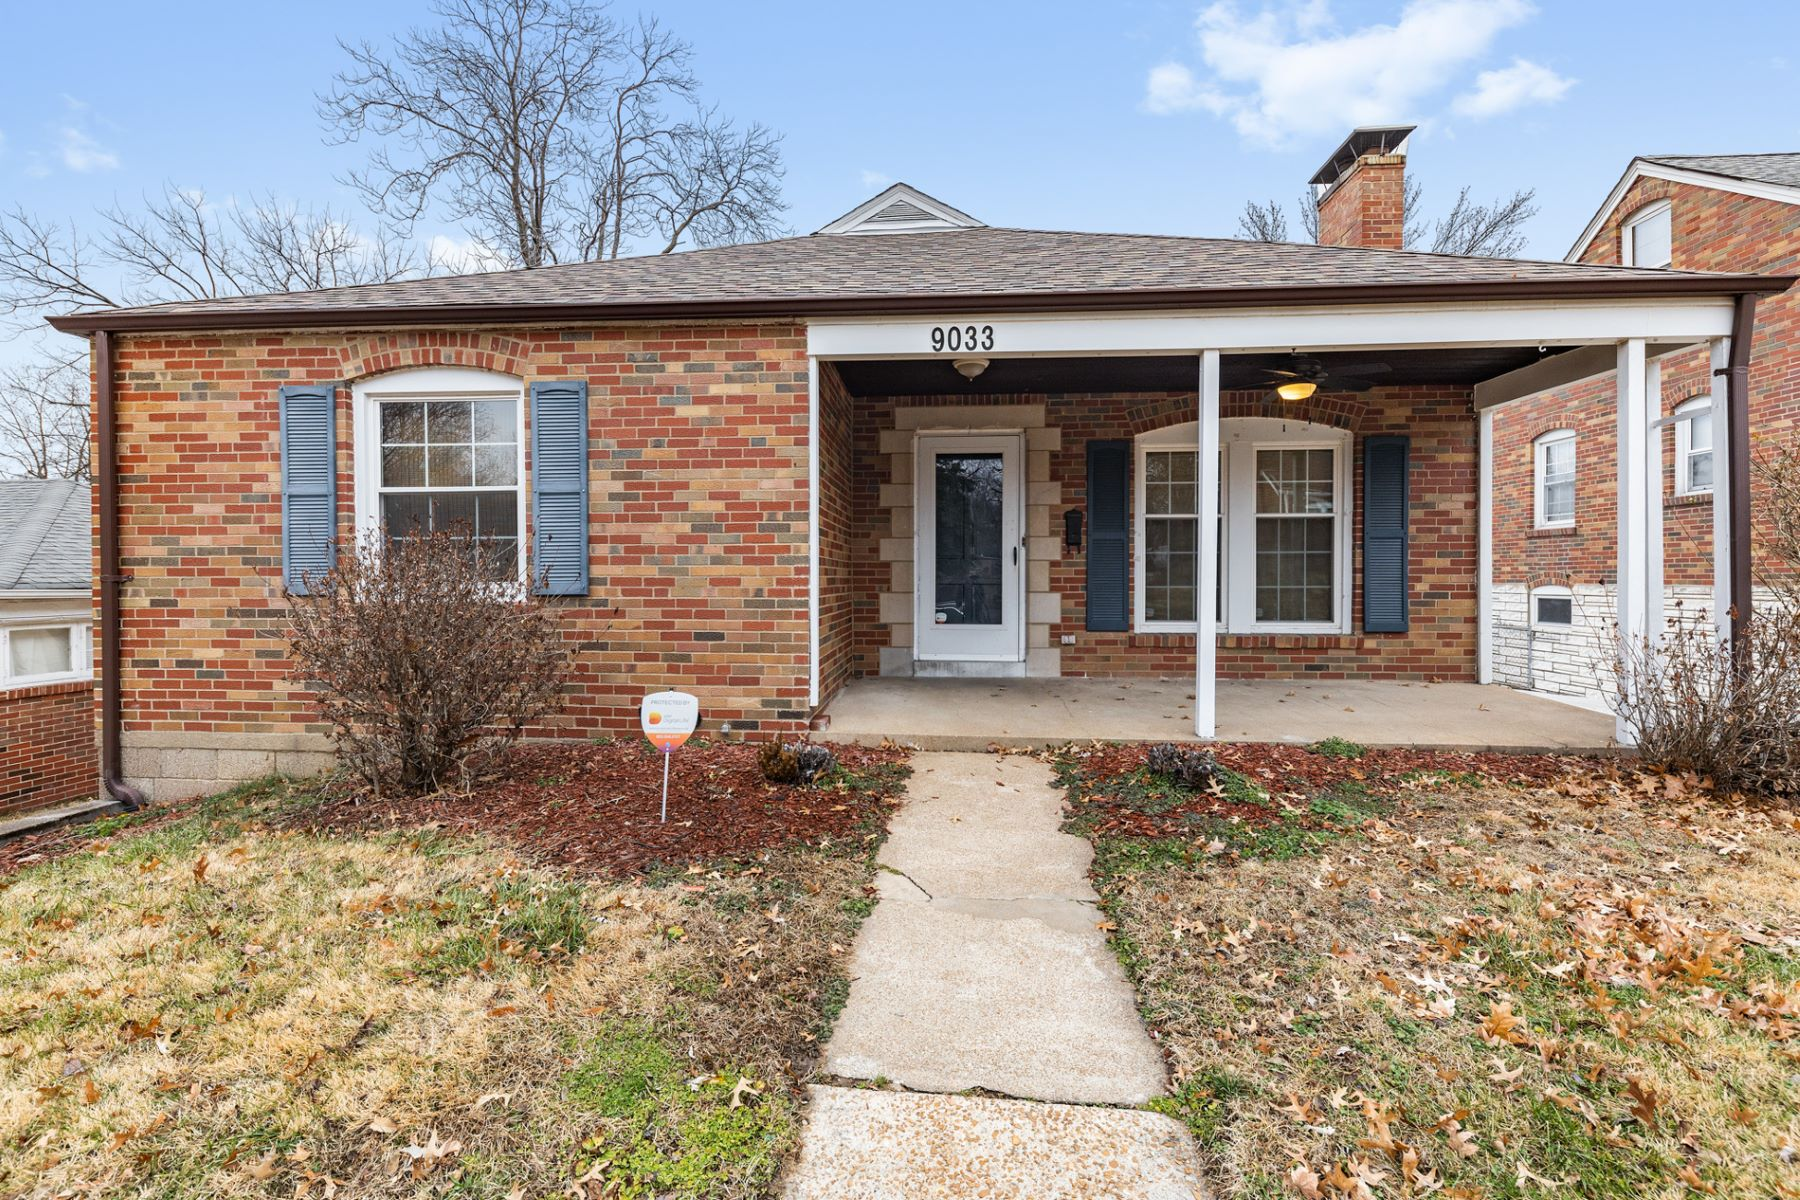 Single Family Home for Sale at Guthrie Ave 9033 Guthrie Ave St. Louis, Missouri 63134 United States